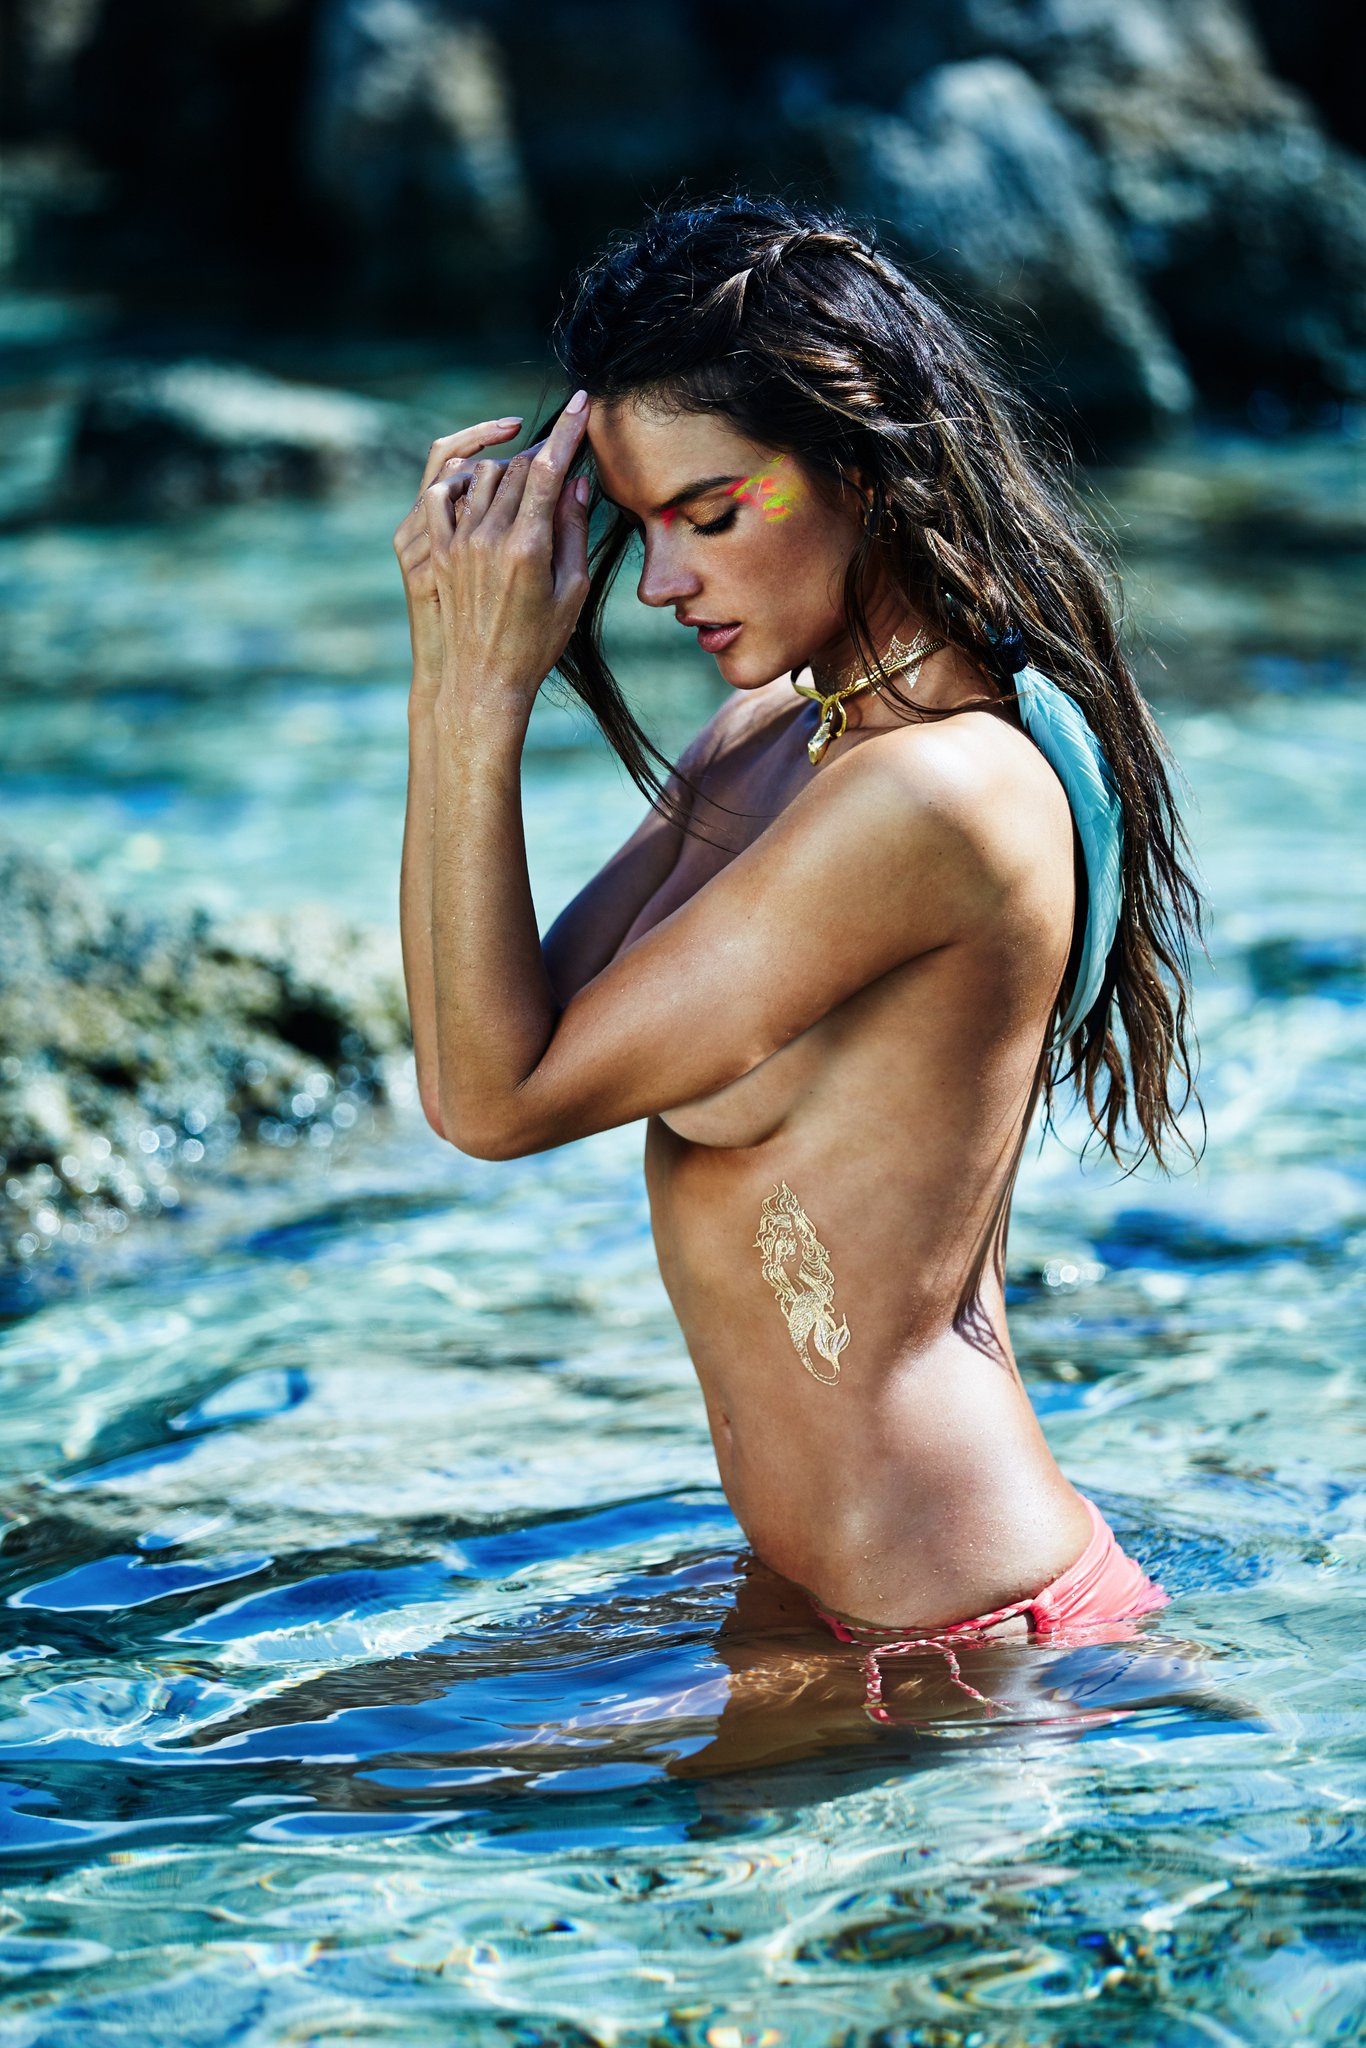 SEA you soon 🙏🐠🐚🐬☀️🌴 https://t.co/uk8e2cGxUc #bodyart @alebyAlessandra https://t.co/pZdTxXuo4t